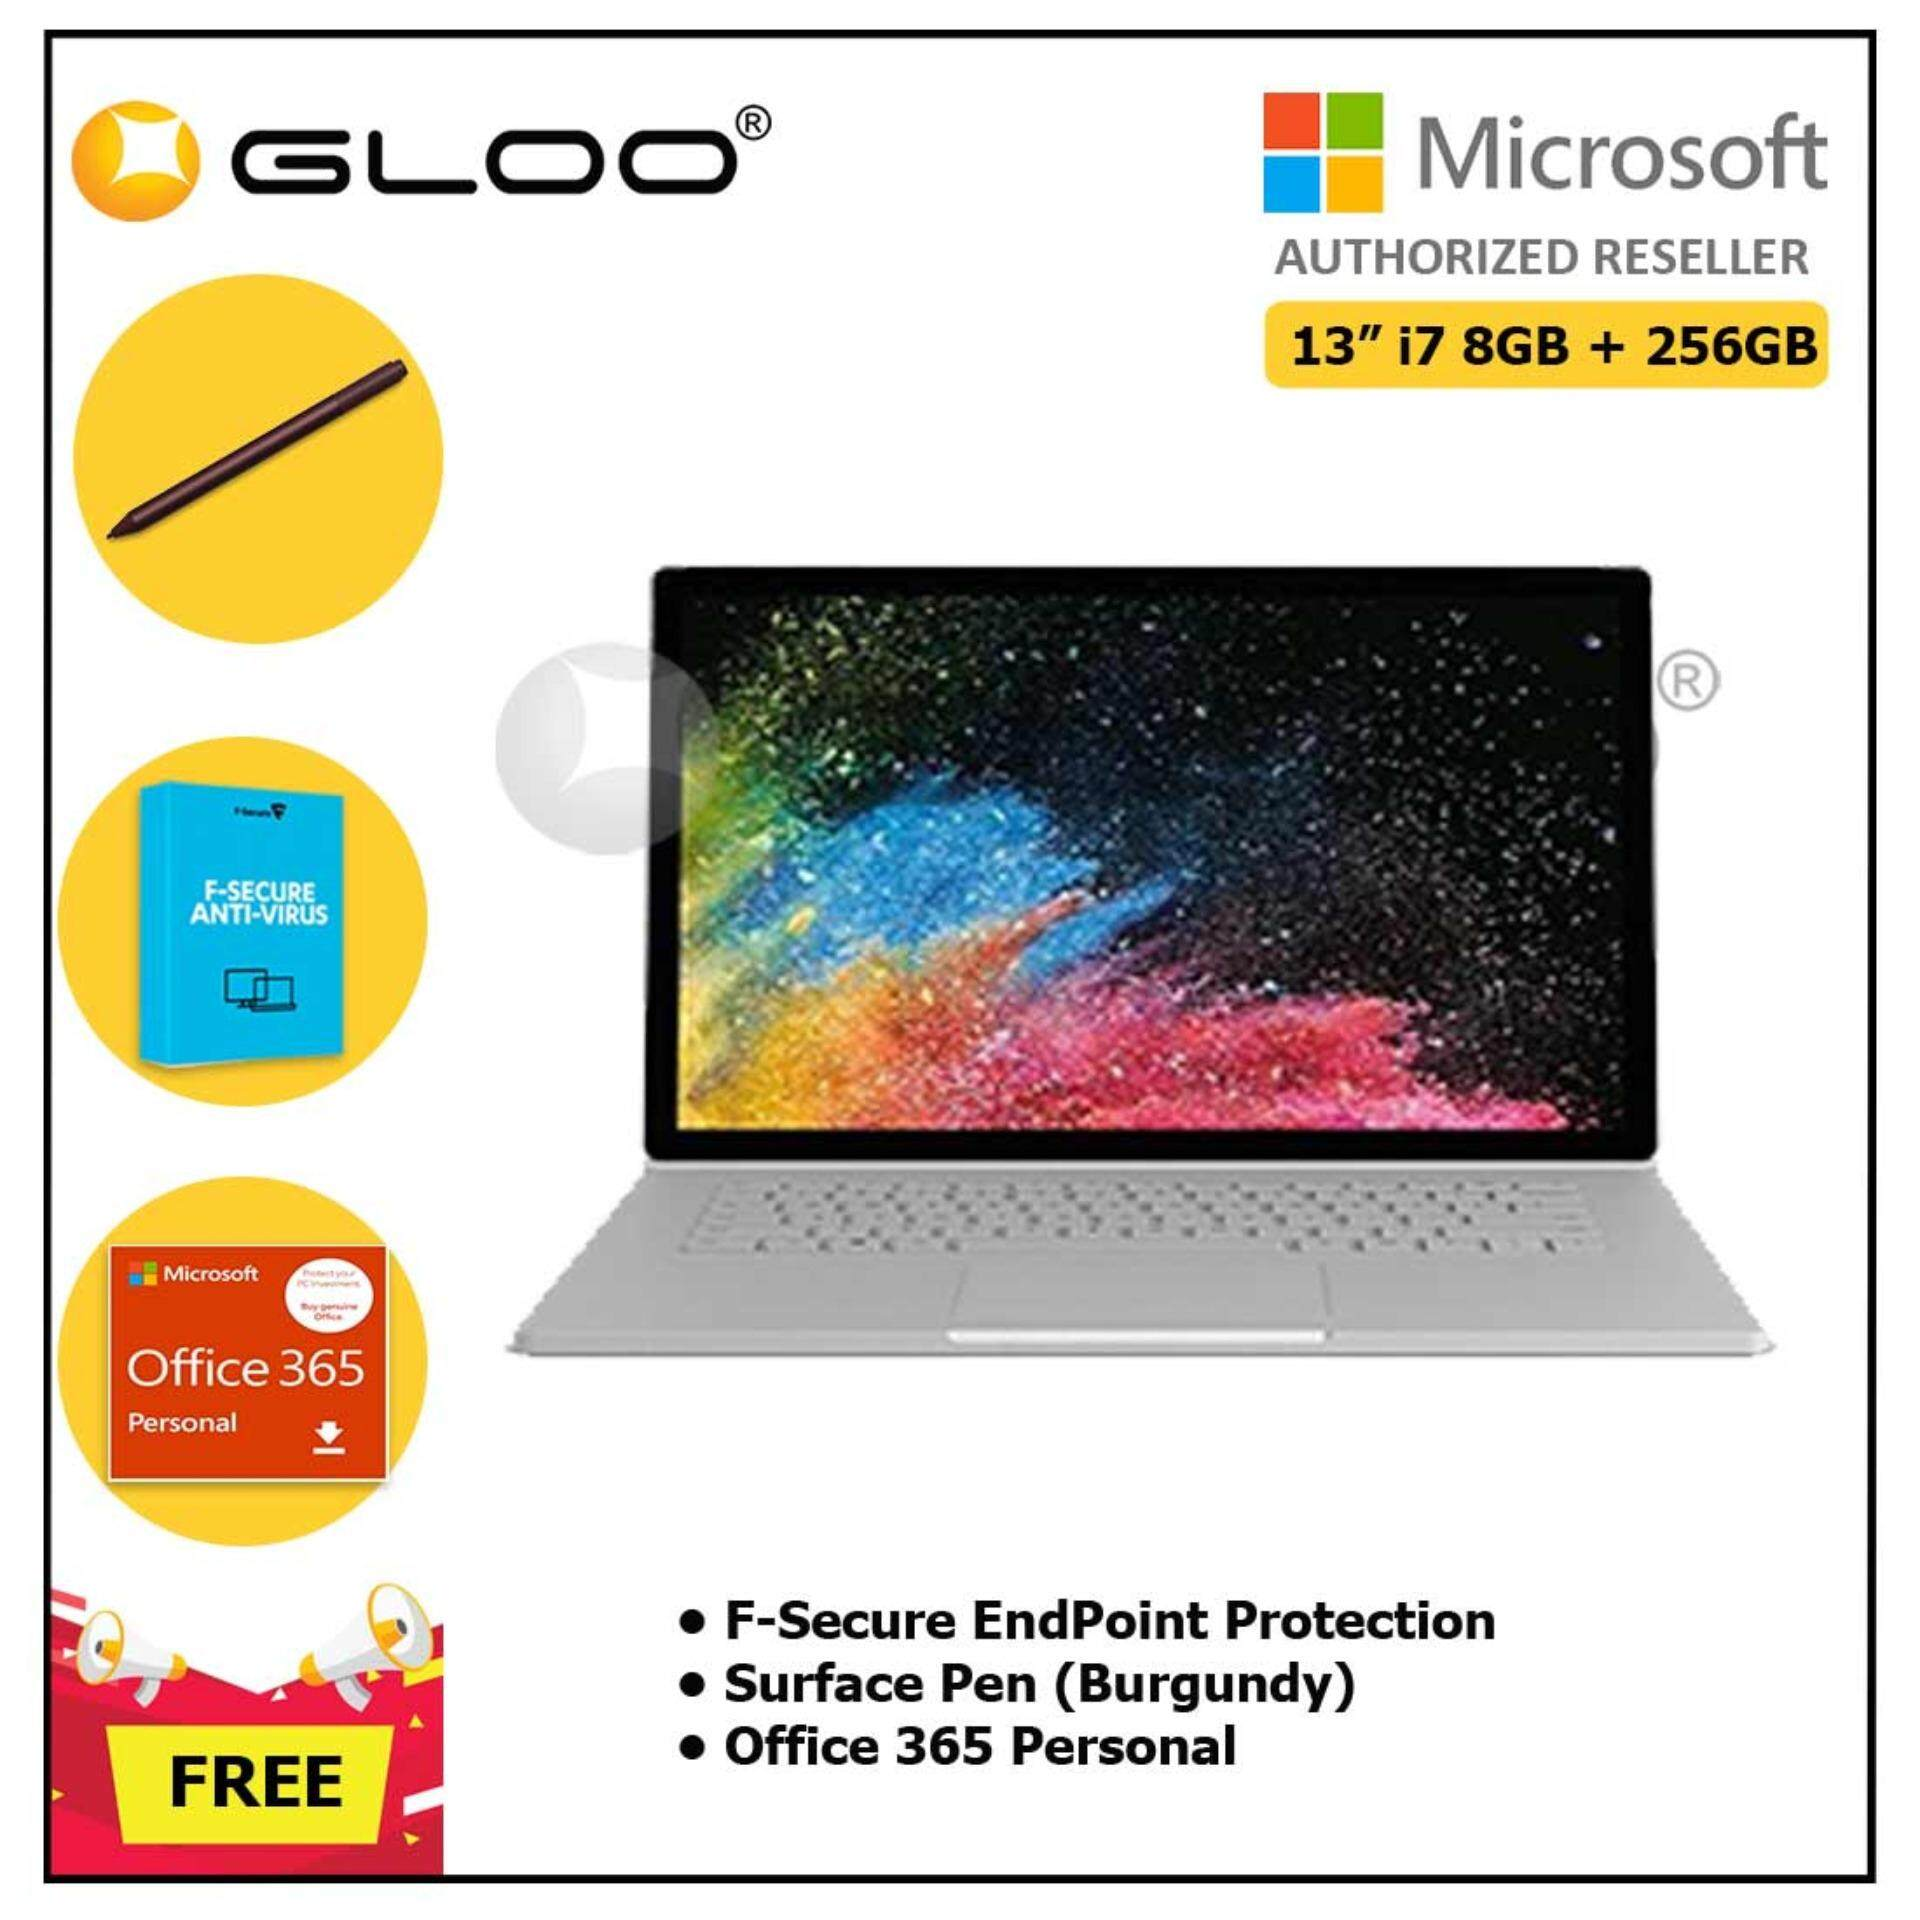 Surface Book 2 13 i7/8GB 256GB + F-Secure EndPoint Protection + Office 365 Personal ESD + Pen Burgundy Malaysia